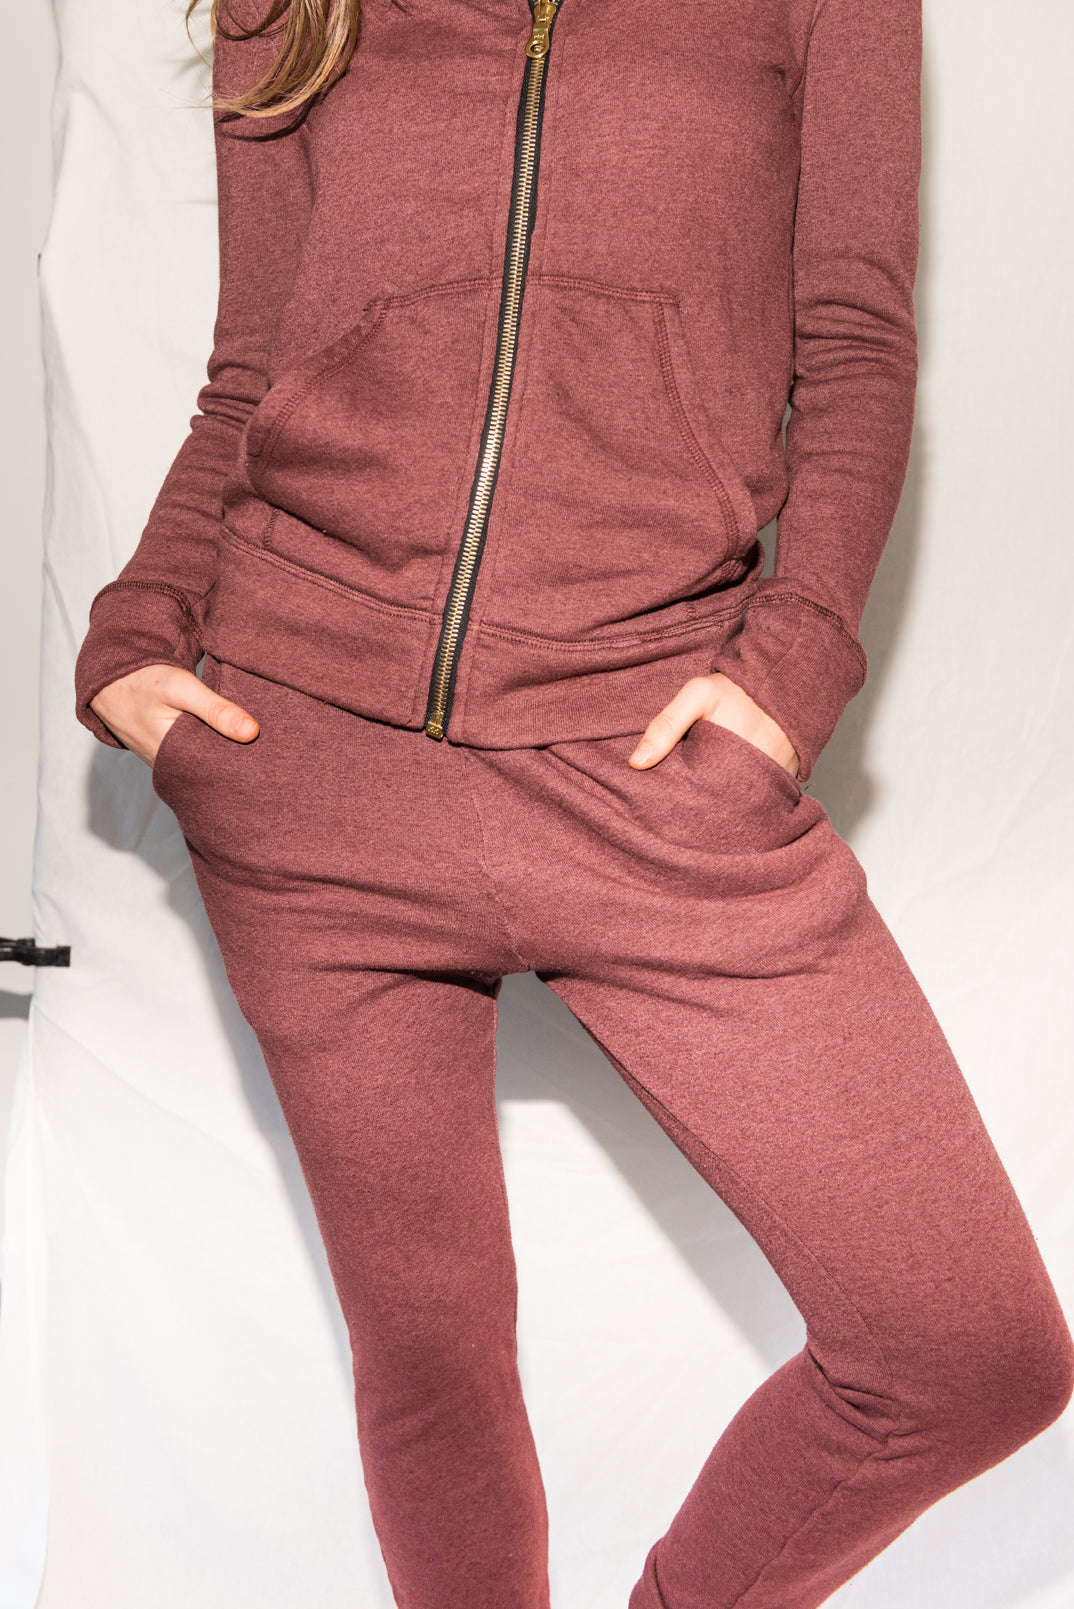 WOMEN'S BACK ZIP SWEATPANT - MAROON